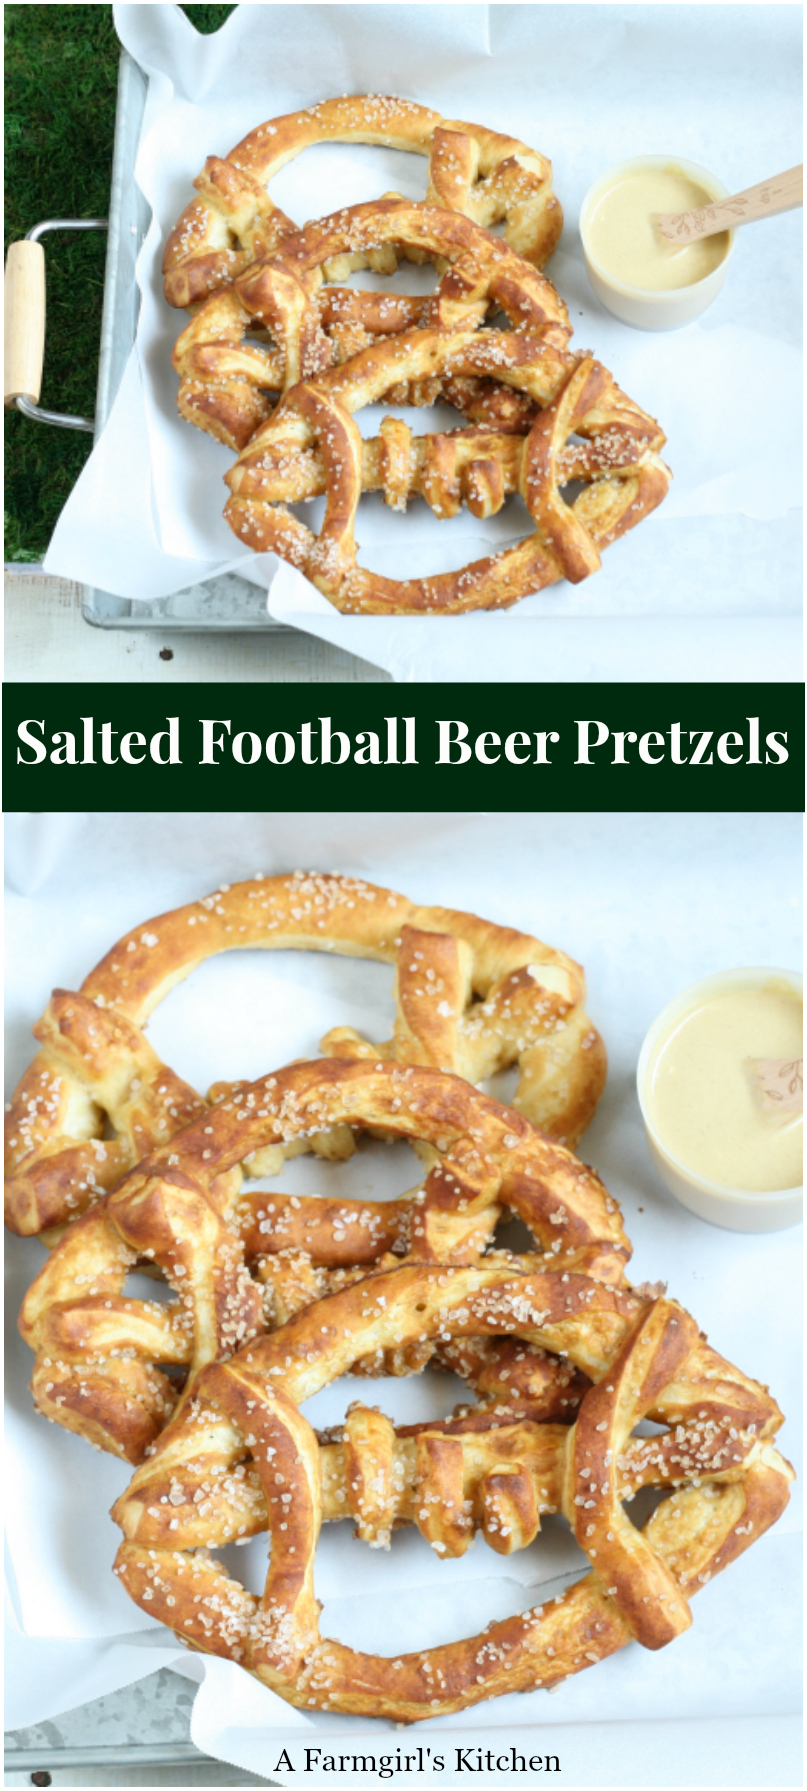 Get in the game day spirit with these Salted Football Beer Pretzels, served up with your favorite dipping sauces. #recipes #footballparty #footballideas #saltedpretzels #homemade